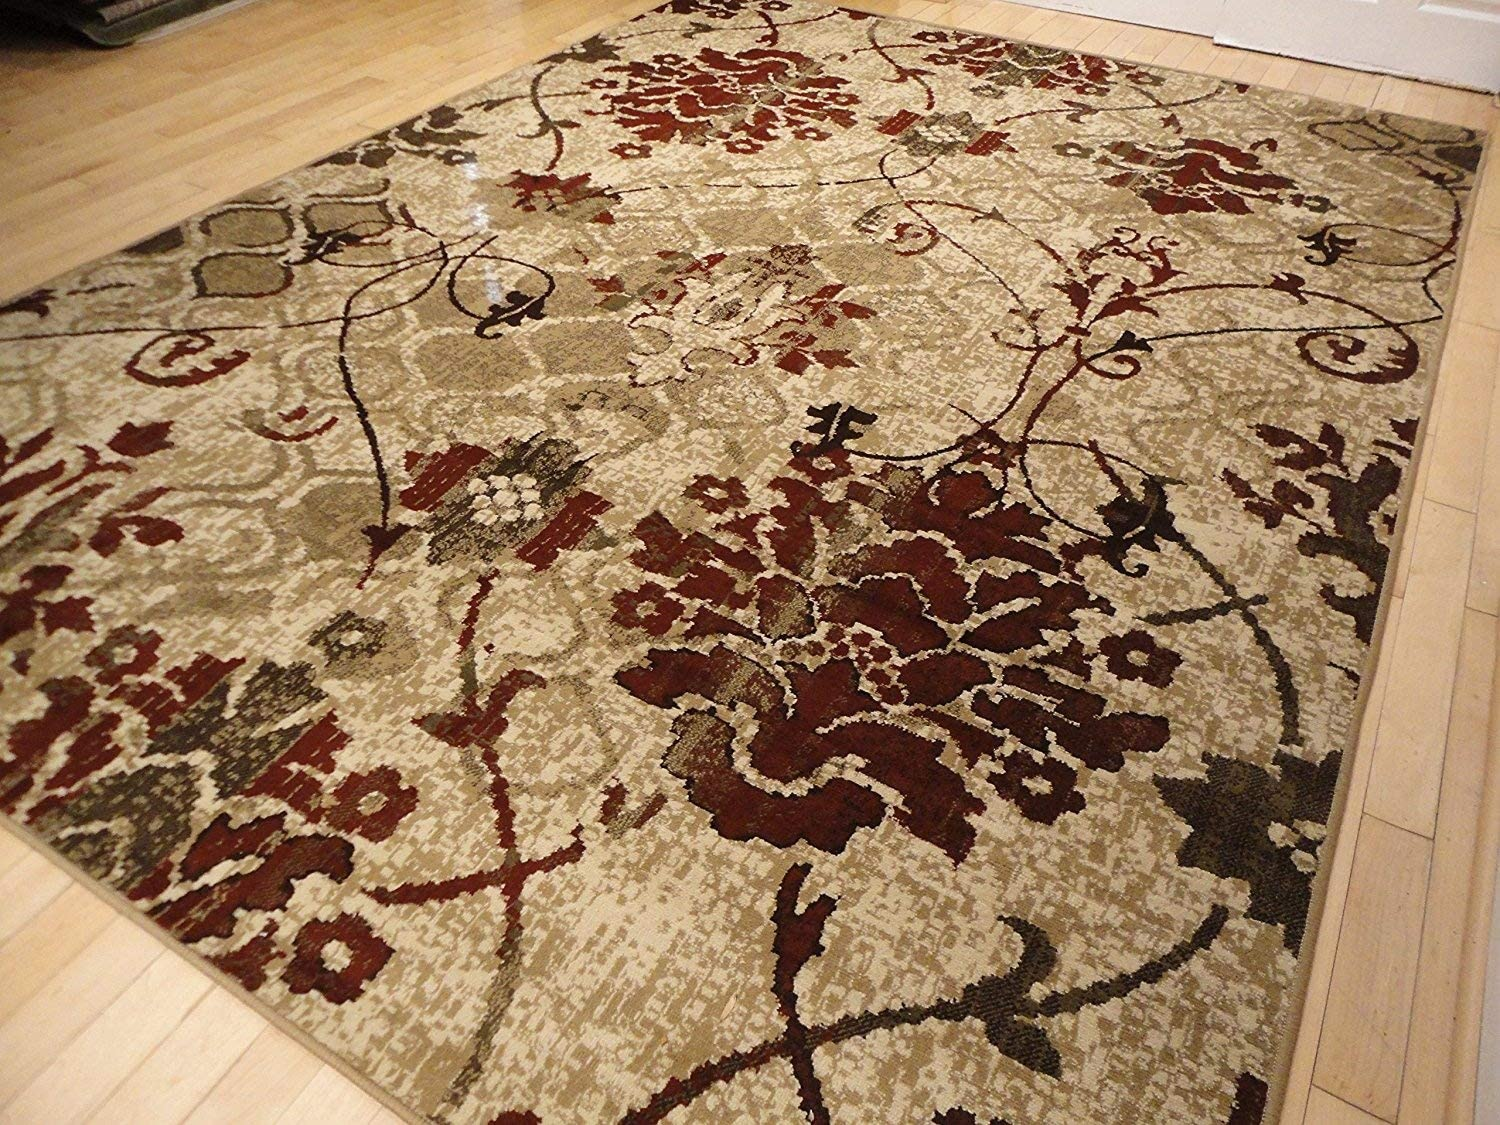 Modern Burgundy Rug For Living Room 5x7 Red Cream Beige Area Rugs Tree Leaves Branch Rug Contemporary Rugs Burgundy Cream Beige 5x8 Rug Home Kitchen